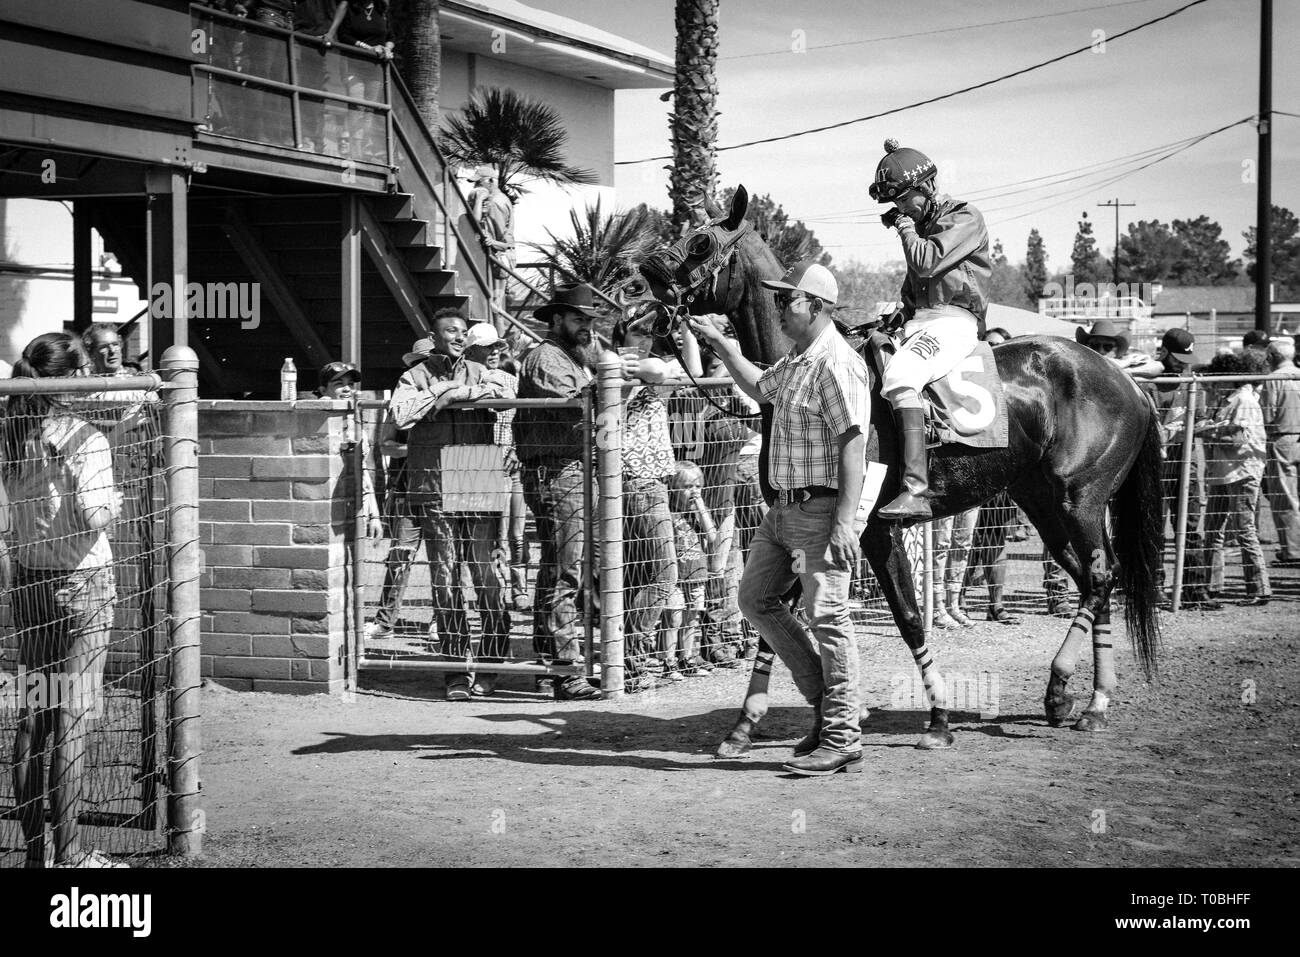 A Trainer Or Handler Escorts The Racehorse Around During The Pre Parade In The Paddock With The Jockey Mounted At The Rillito Race Track In Tucson Az